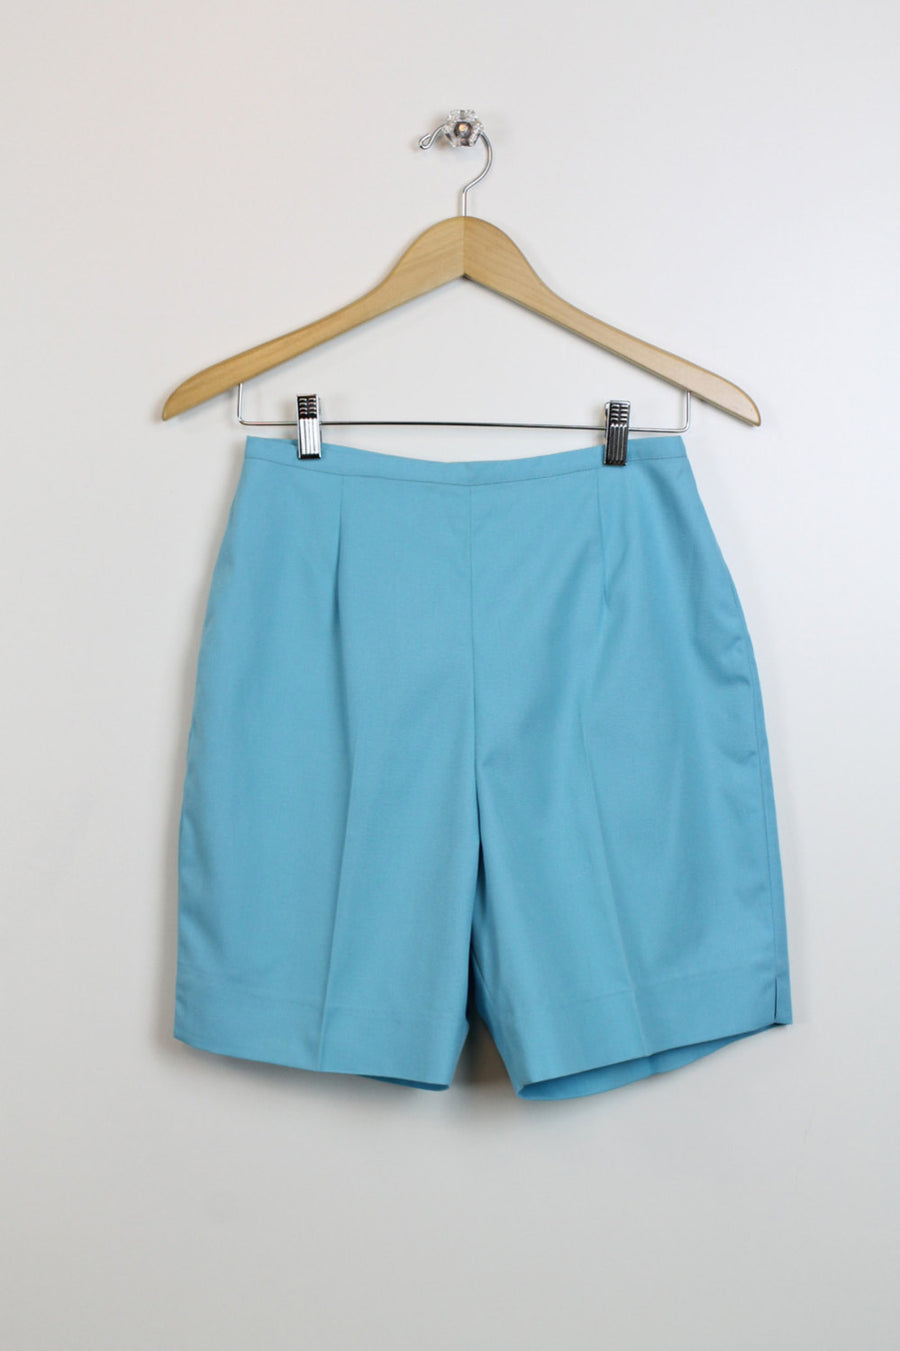 1960s cotton shorts small | vintage high waist shorts